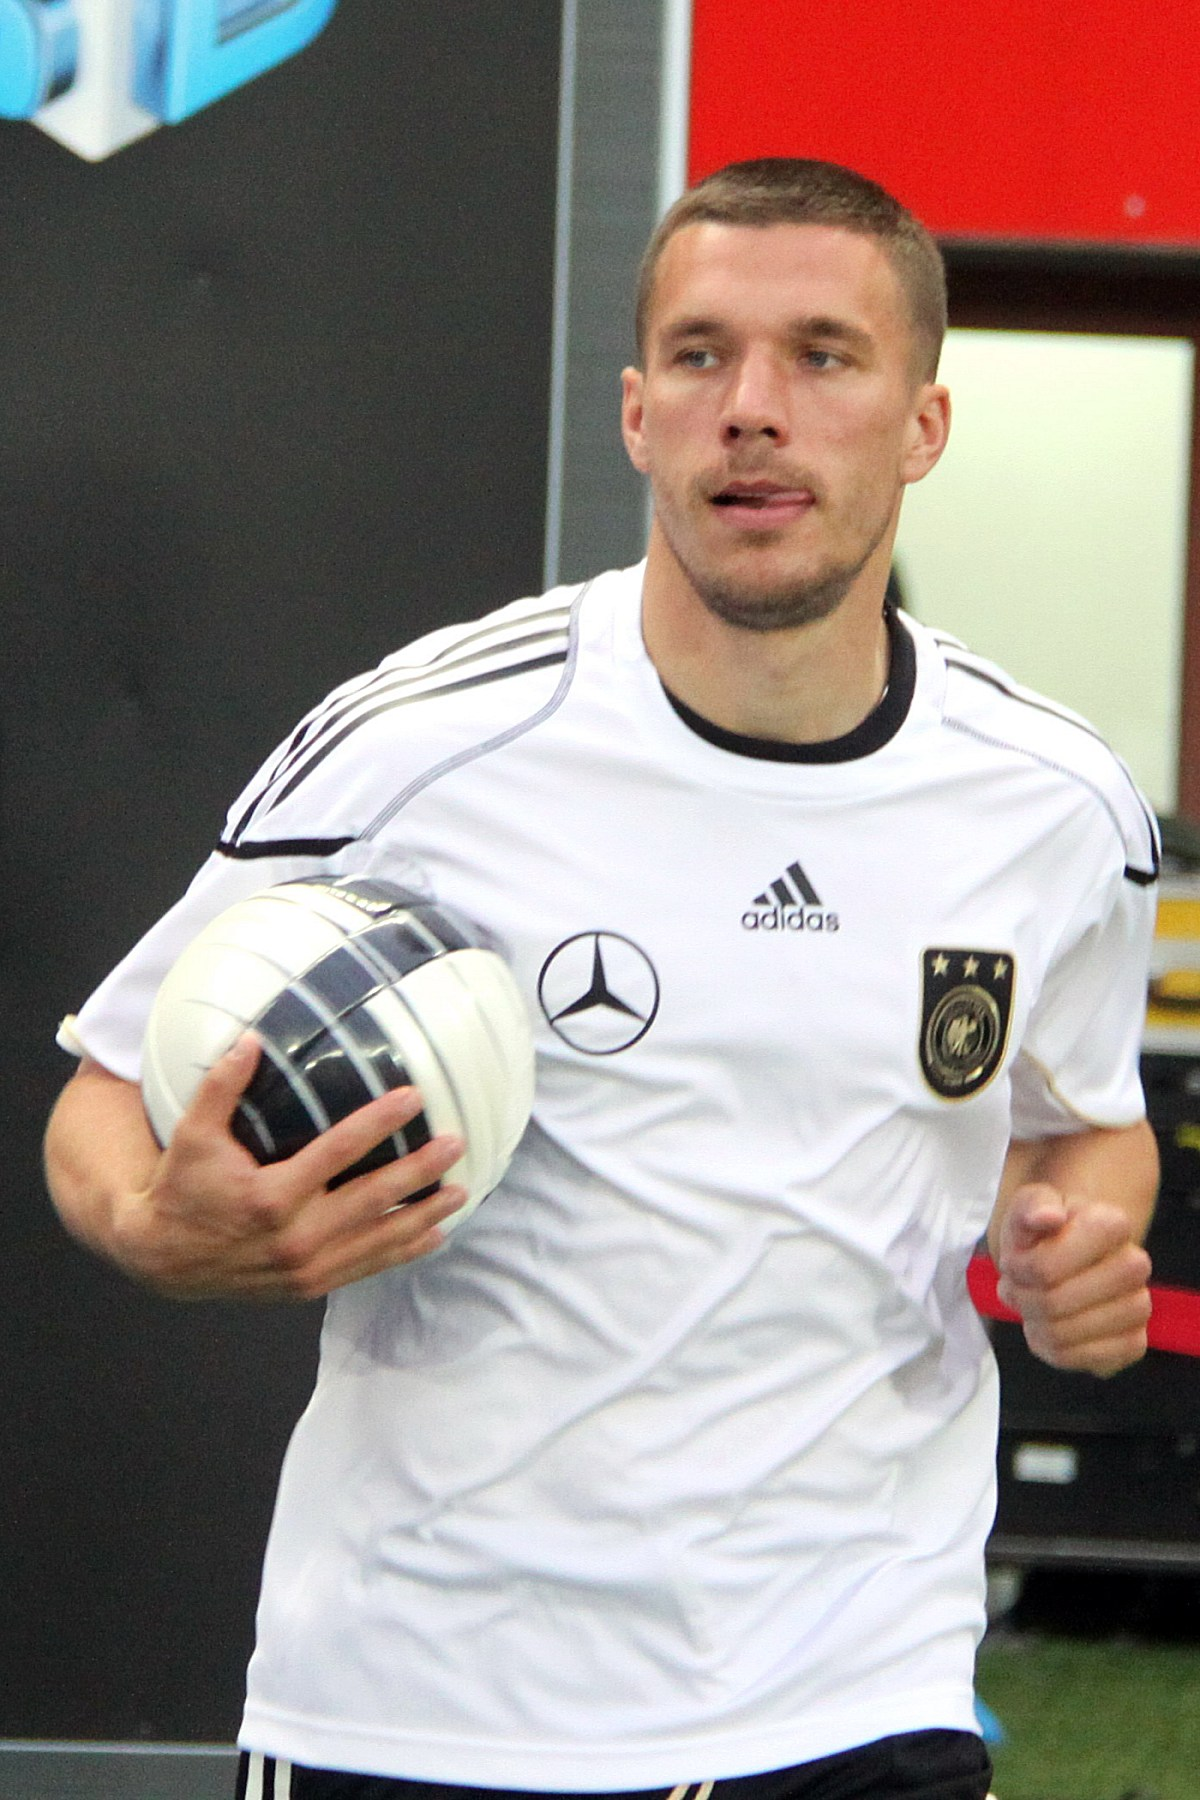 File:Lukas Podolski, Germany national football team (01